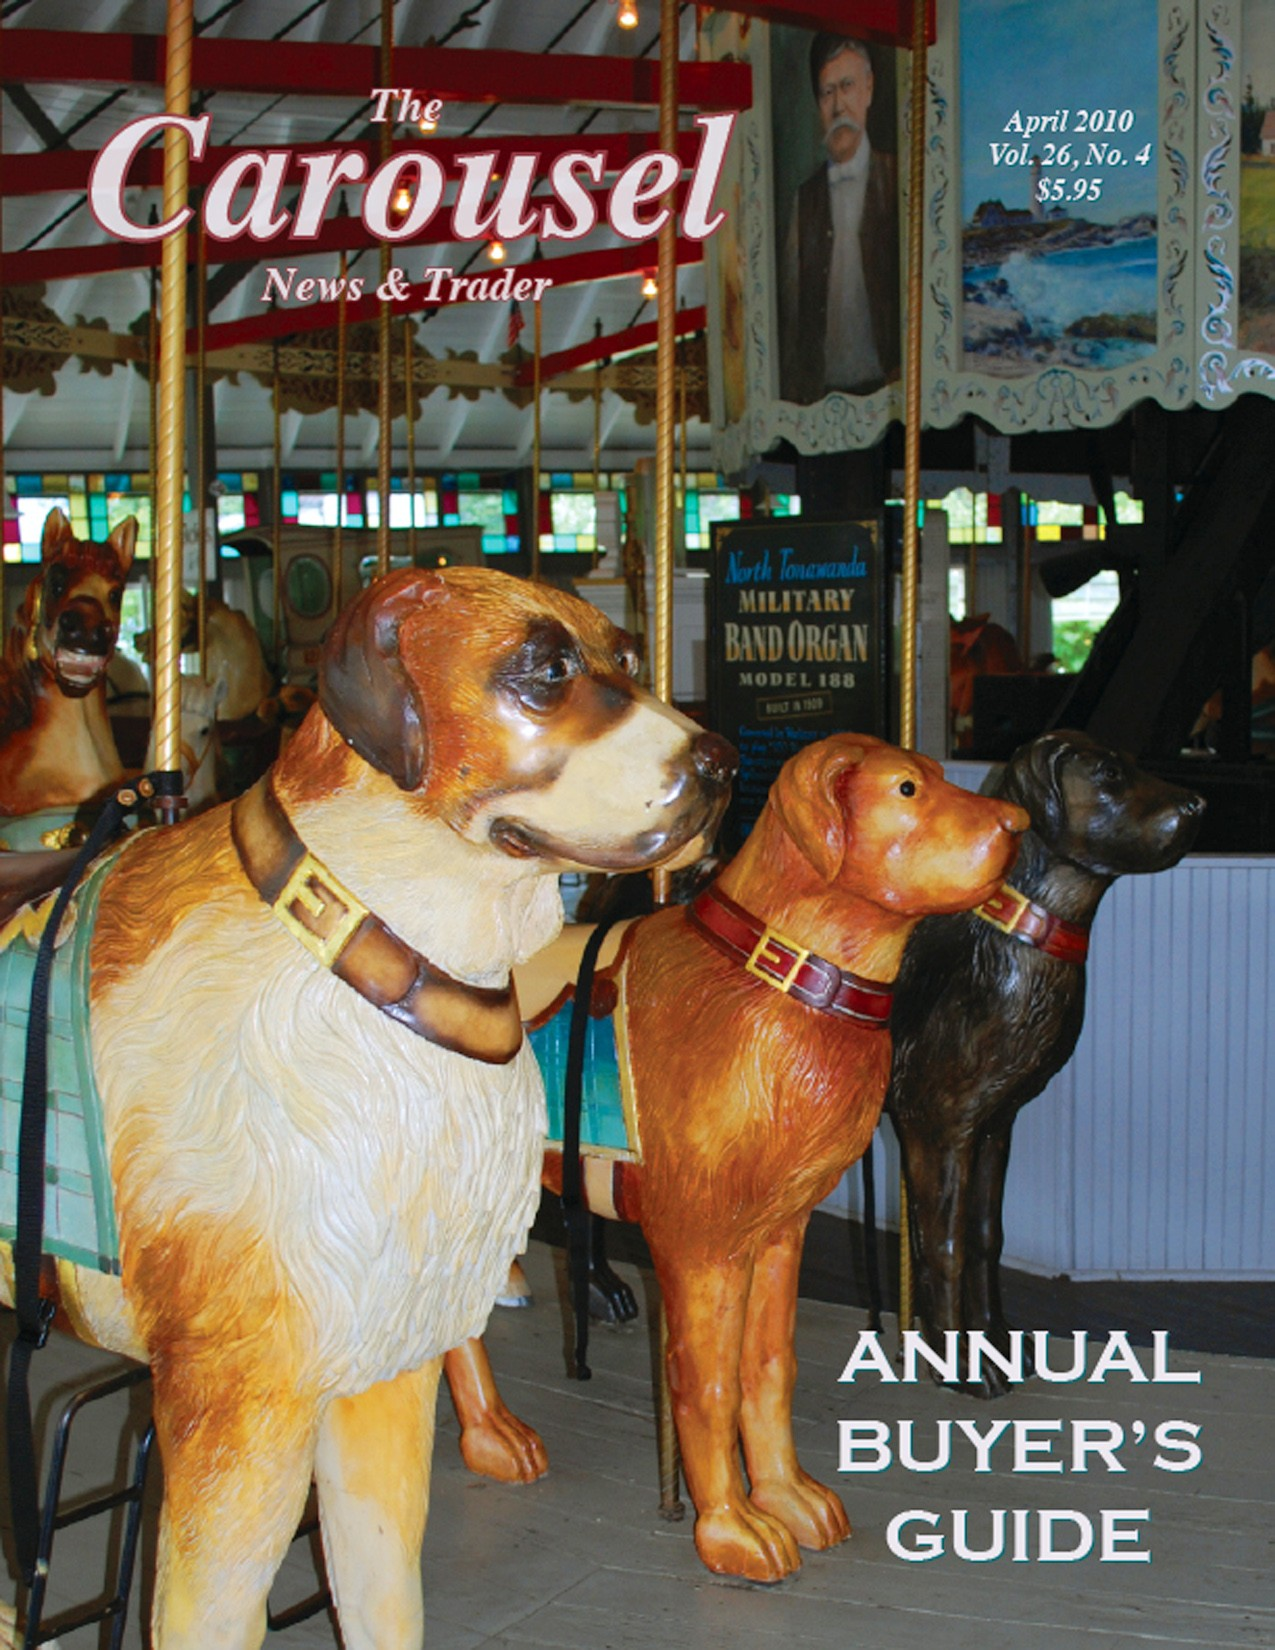 Carousel-news-cover-4-Historic-Slater-Park-RI-Looff-carousel-April-2010